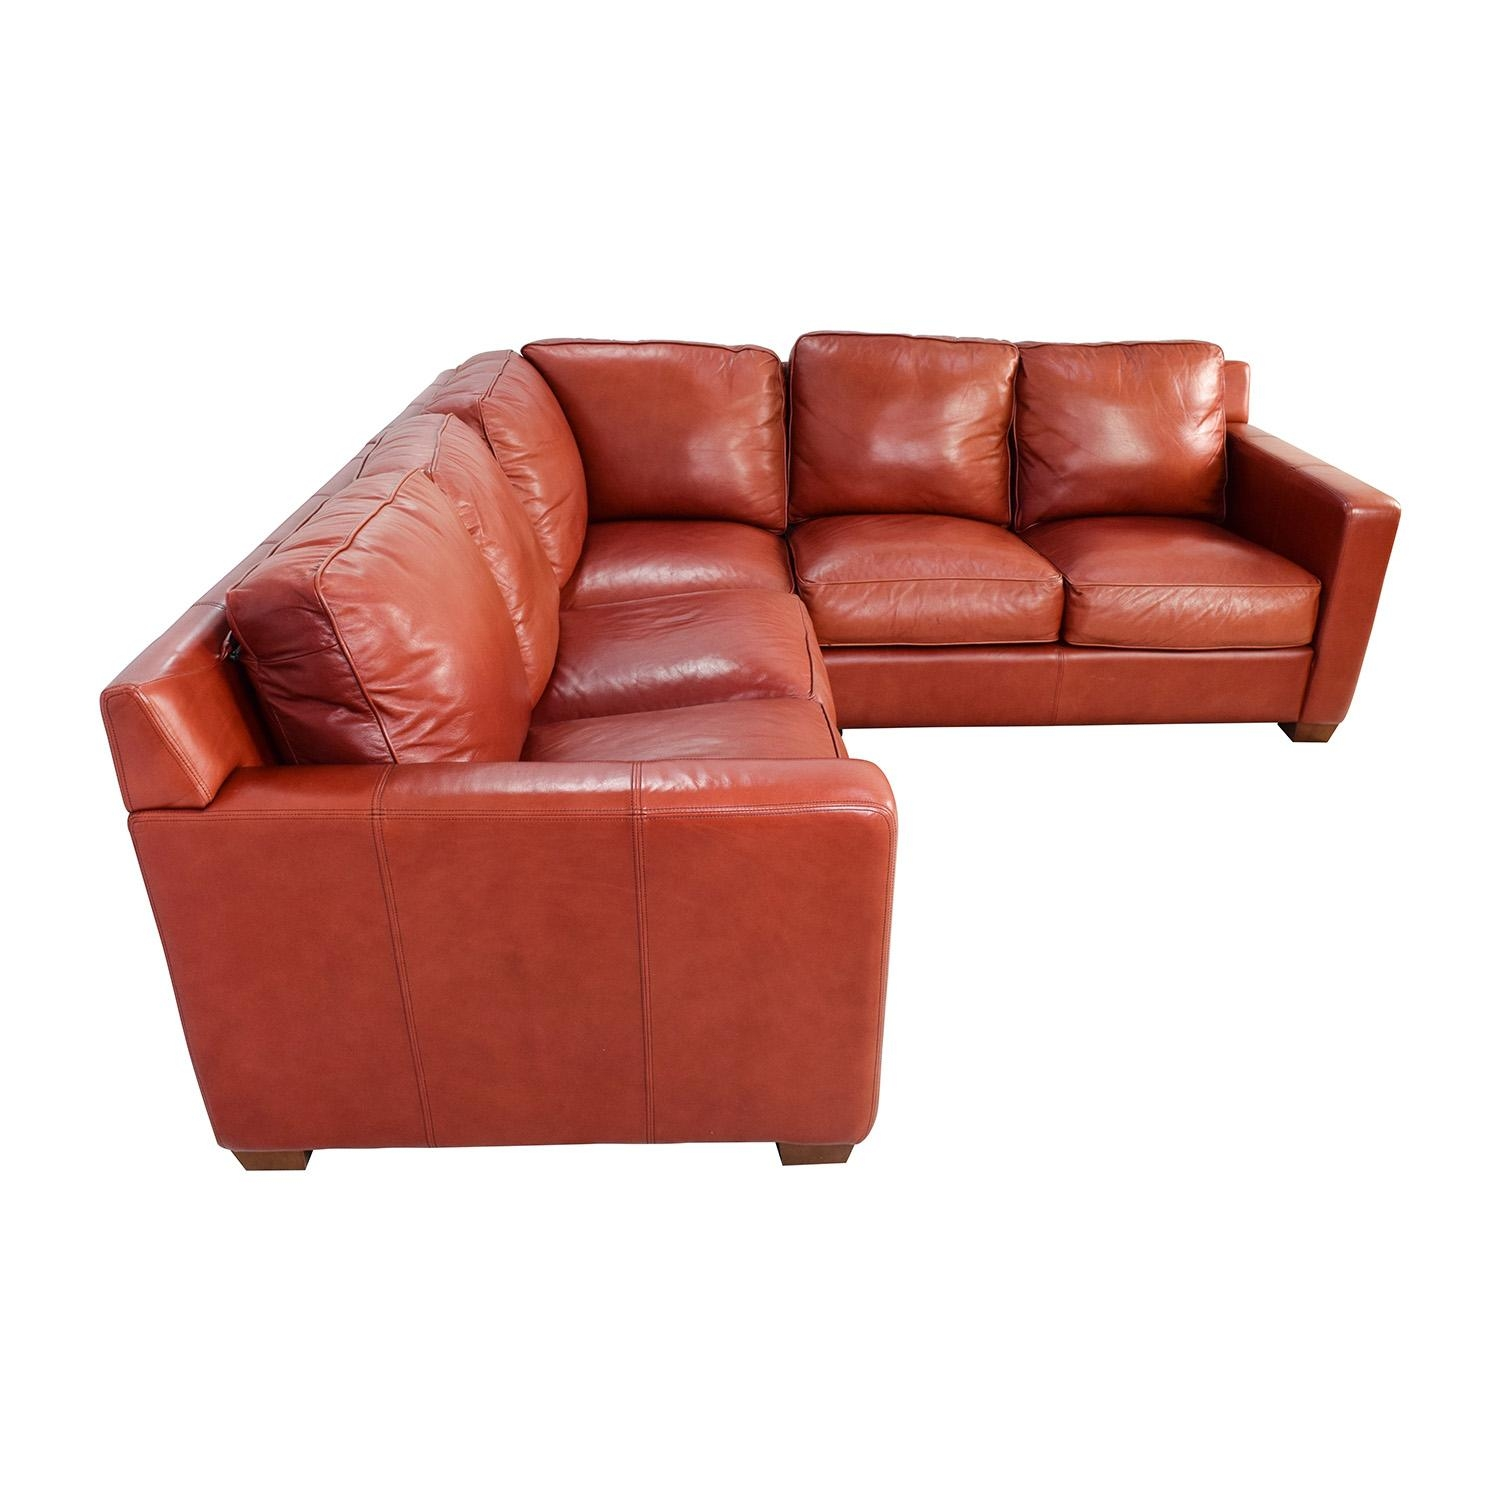 68% Off – Thomasville Thomasville Red Leather Sectional / Sofas Regarding Thomasville Leather Sectionals (View 11 of 20)